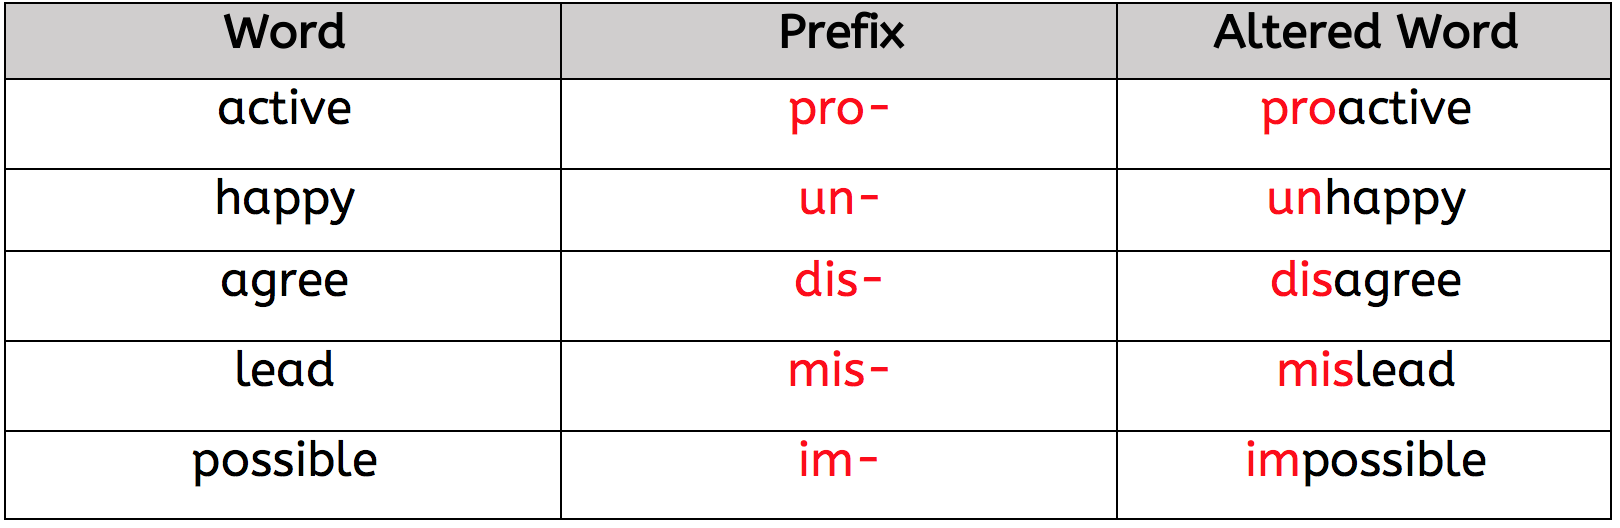 What are Prefixes in KS2